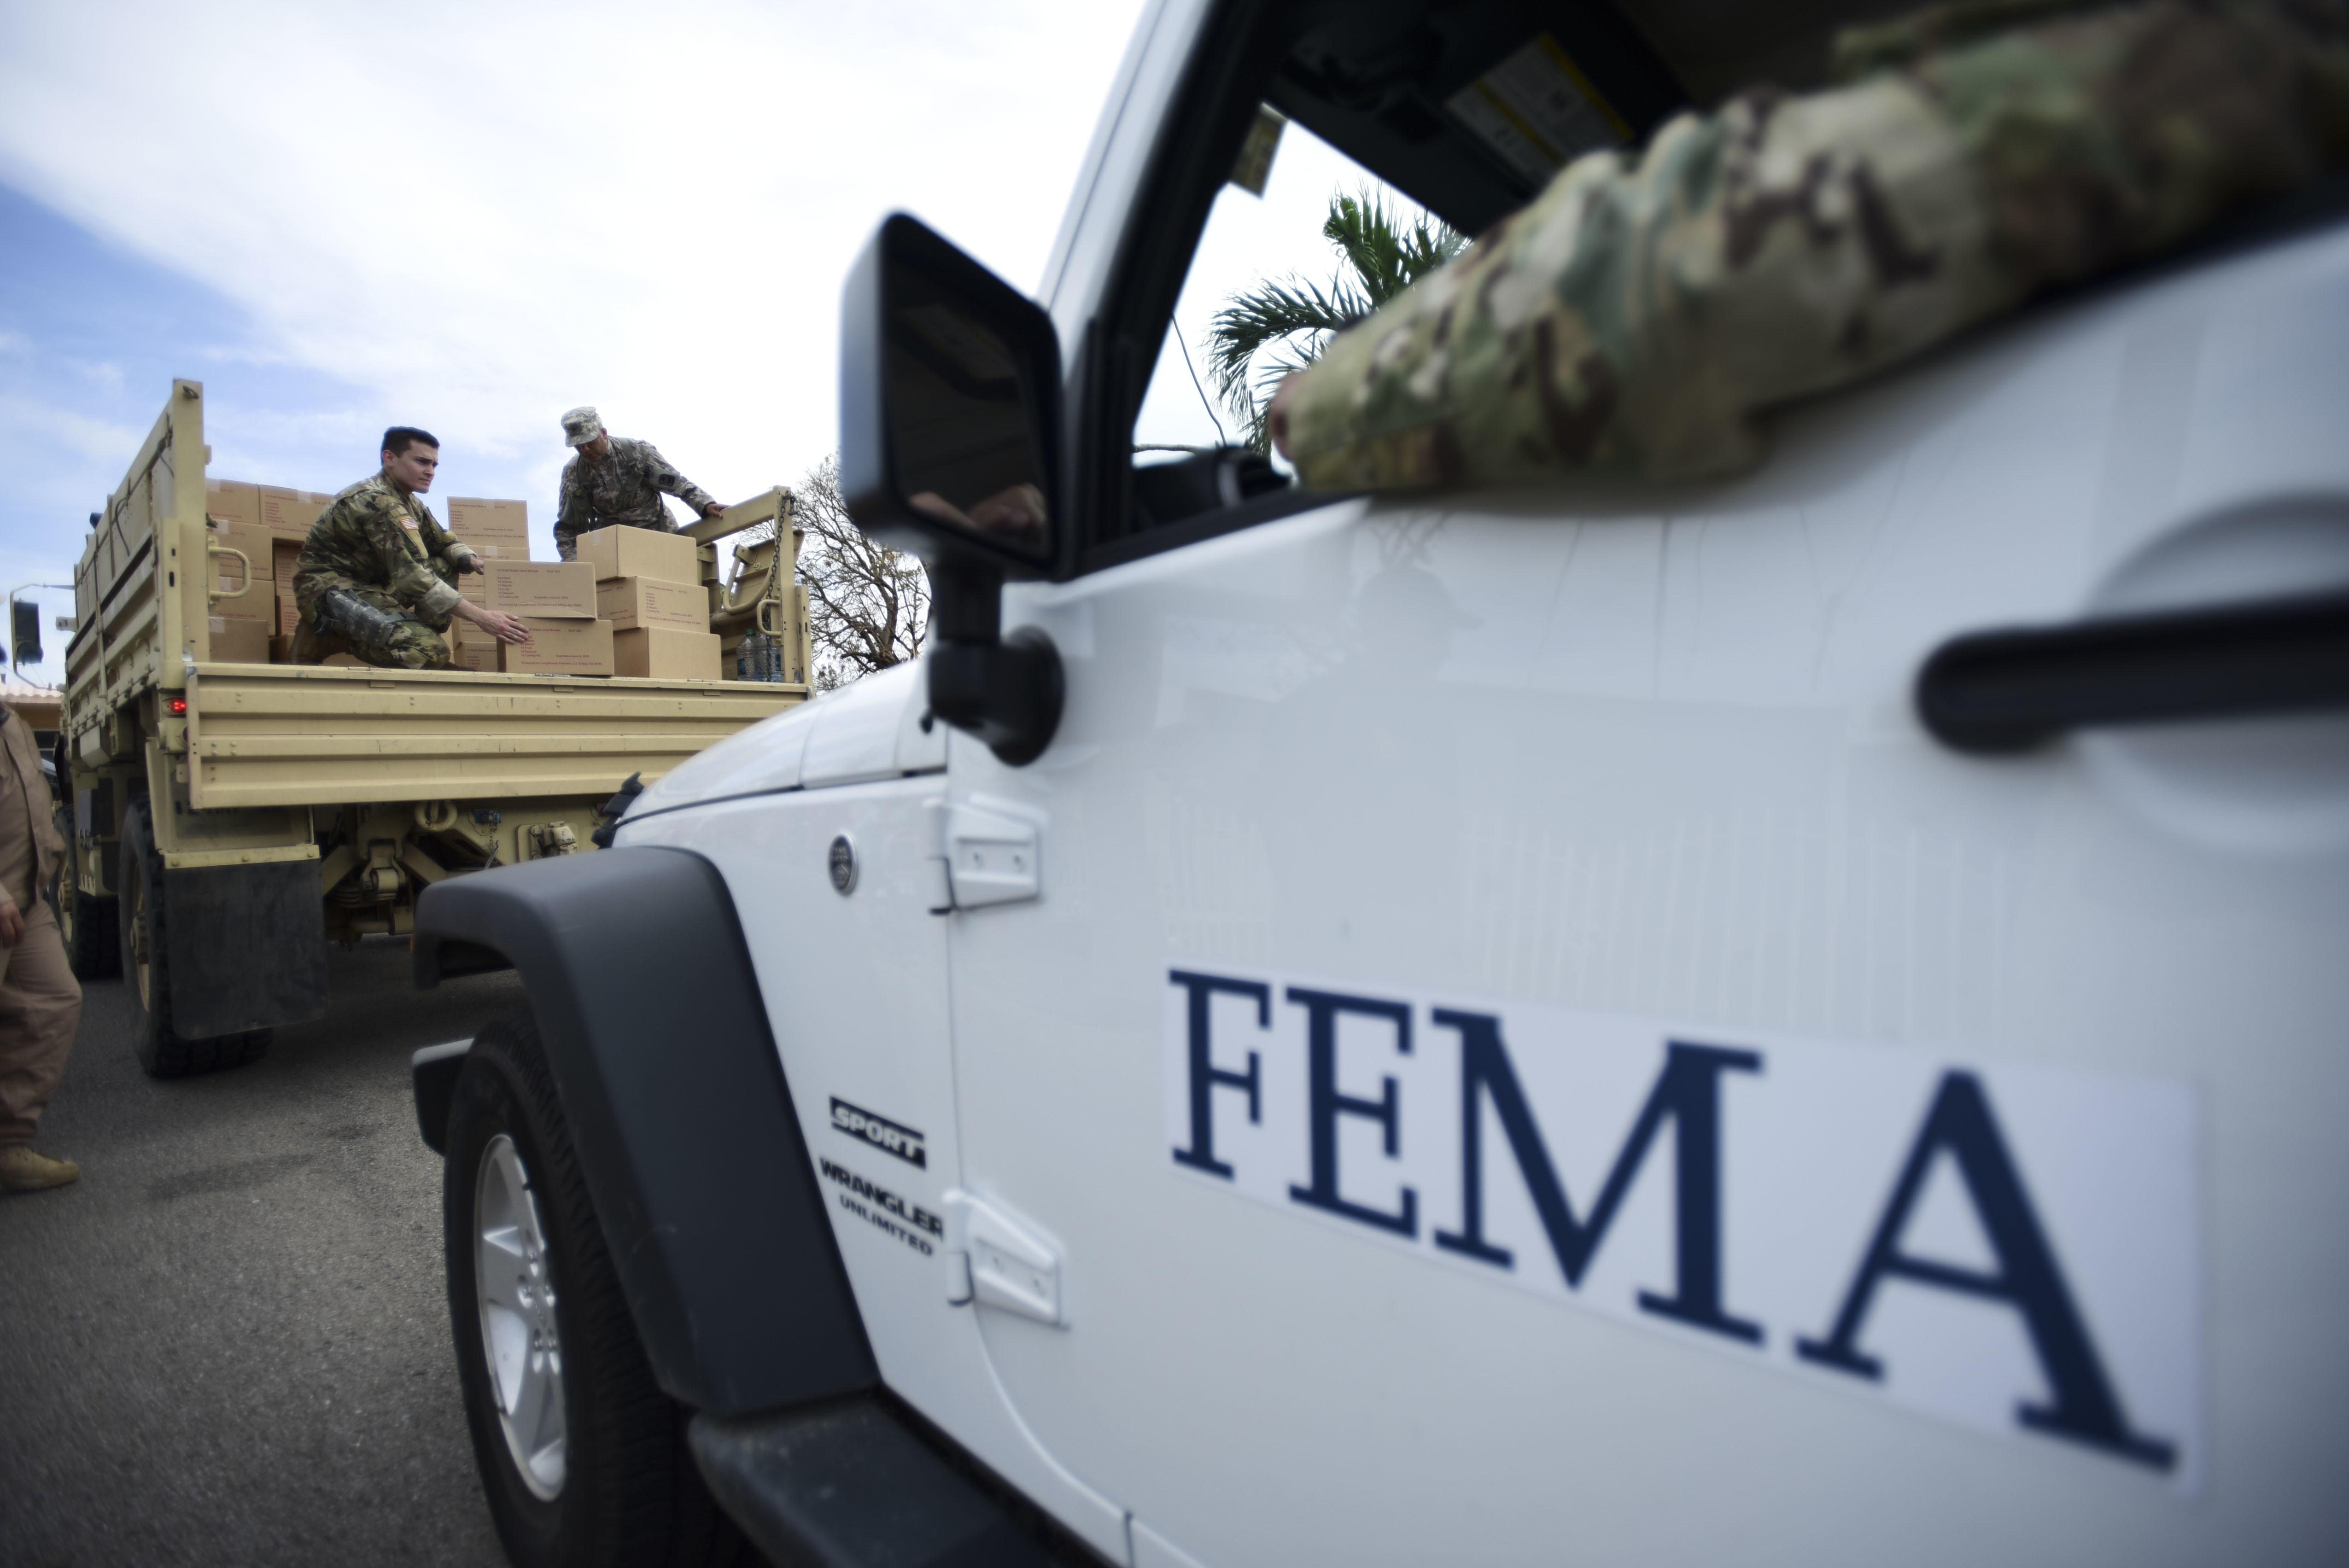 FEMA blundered by releasing privacy data of 2.3 million disaster survivors, watchdog says